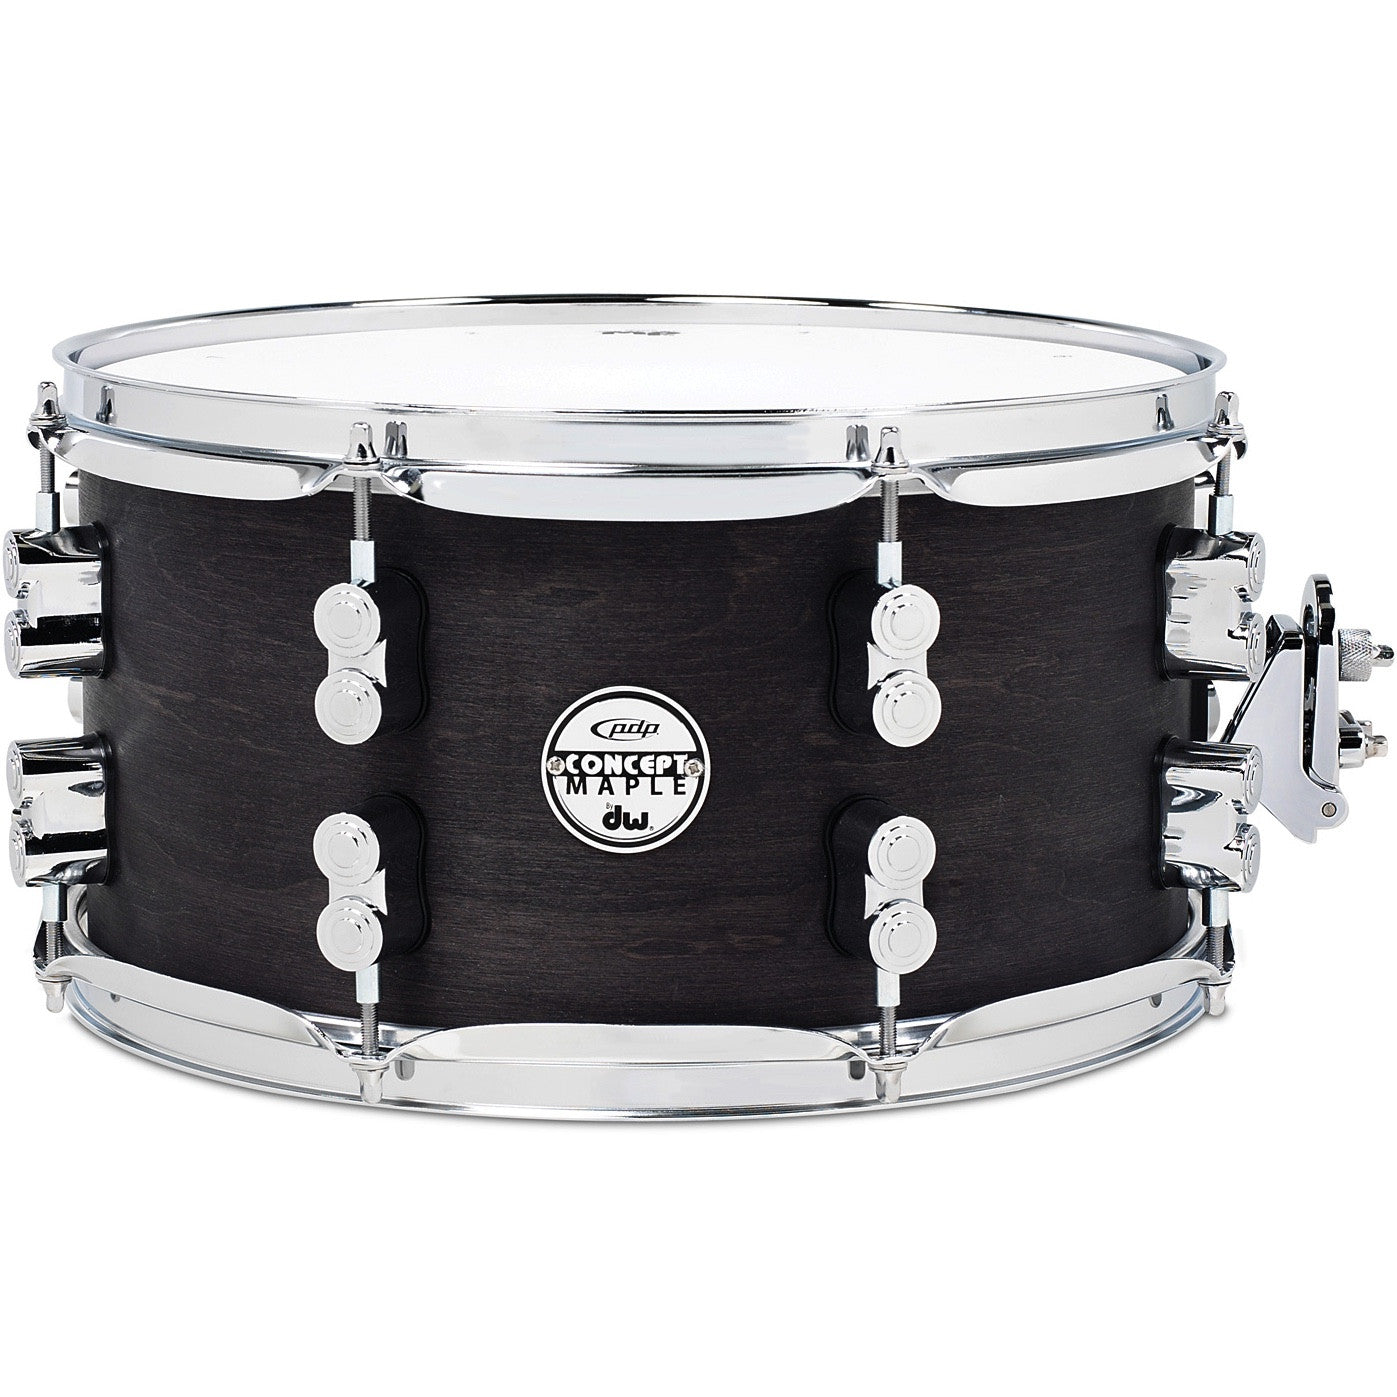 PDP Concept Series All-Maple Black Wax Snare PDSN0713BWCR